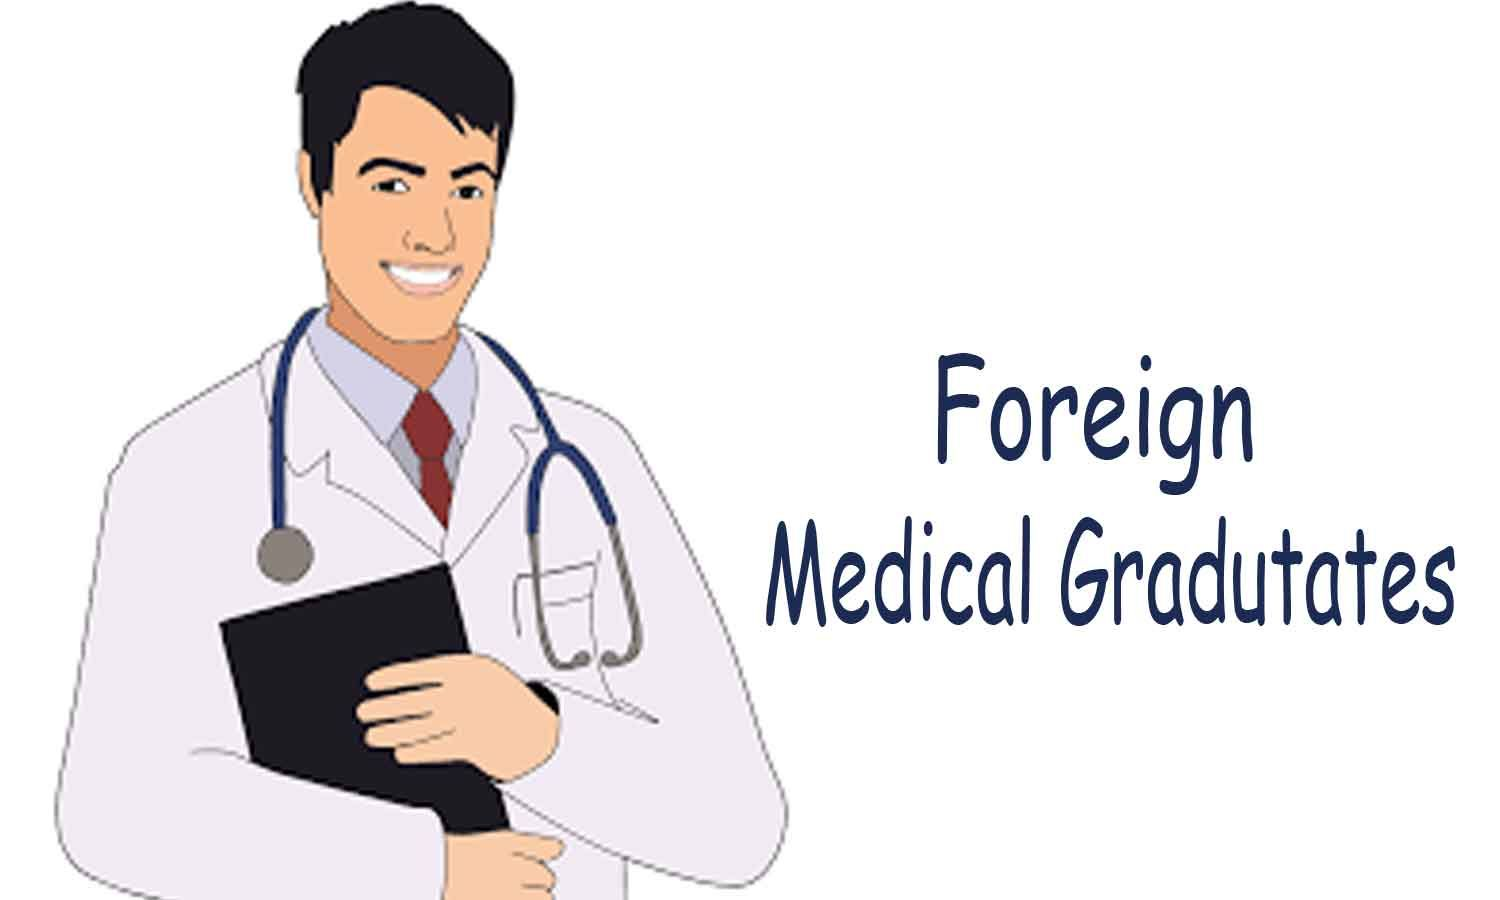 Coronavirus Crisis: MBBS from abroad seek exemption from FMGE, say could add 20,000 medics immediately to system